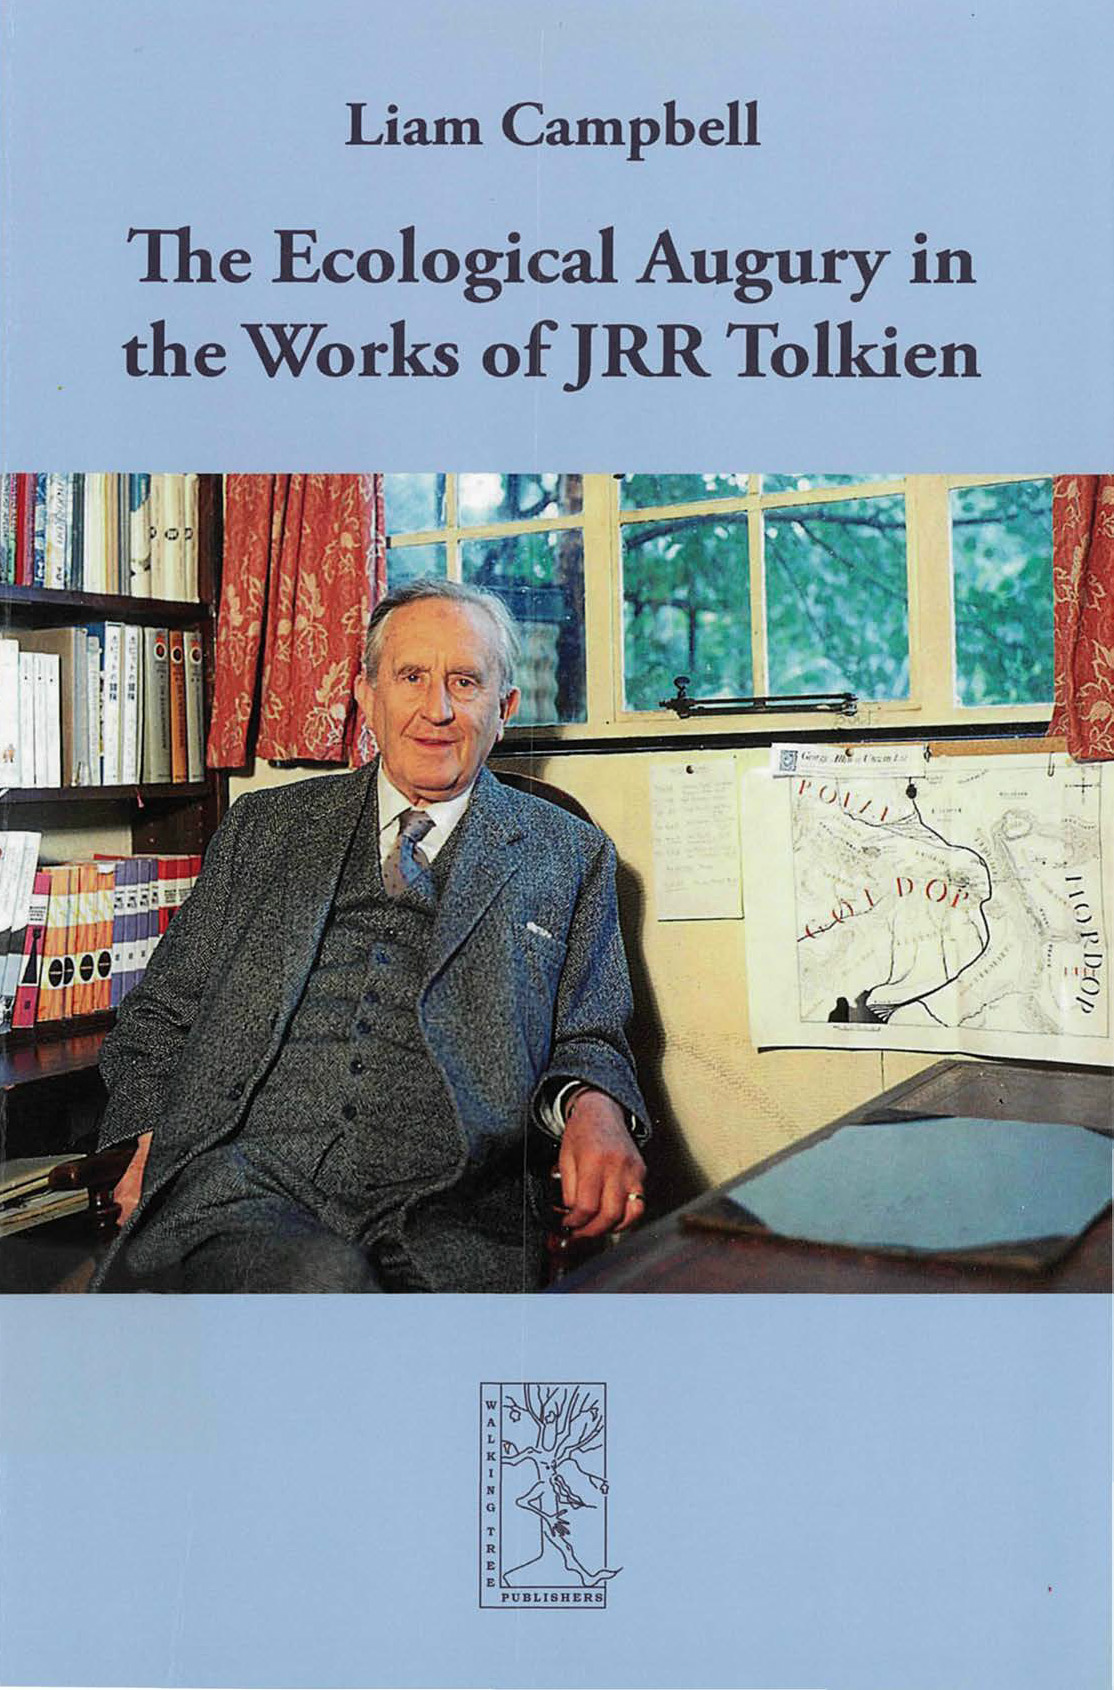 The Ecological Augury in the Works of JRR Tolkien (Cormarë Series #21)